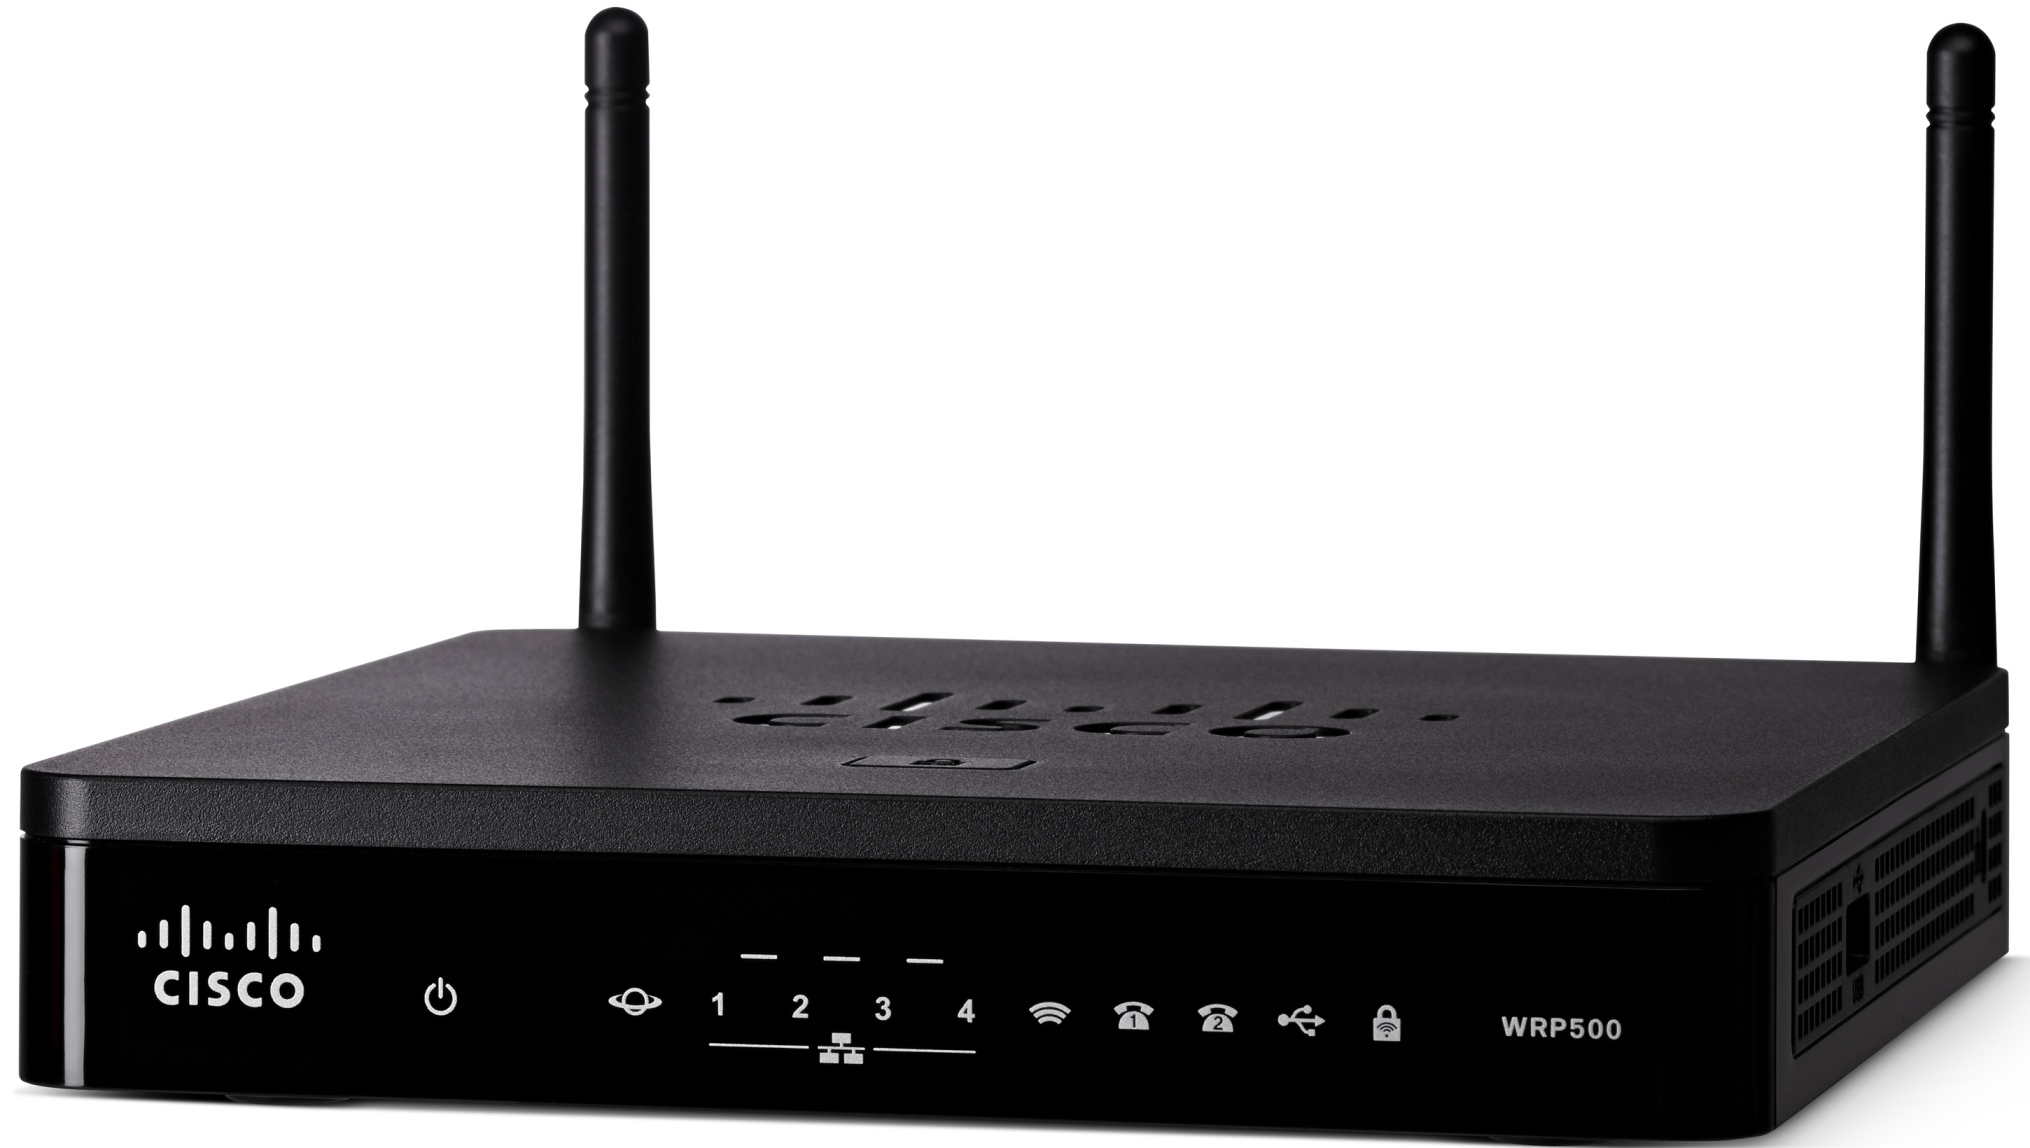 Cisco WRP500 Wi-fi AC Broad. router, 2 phone ports